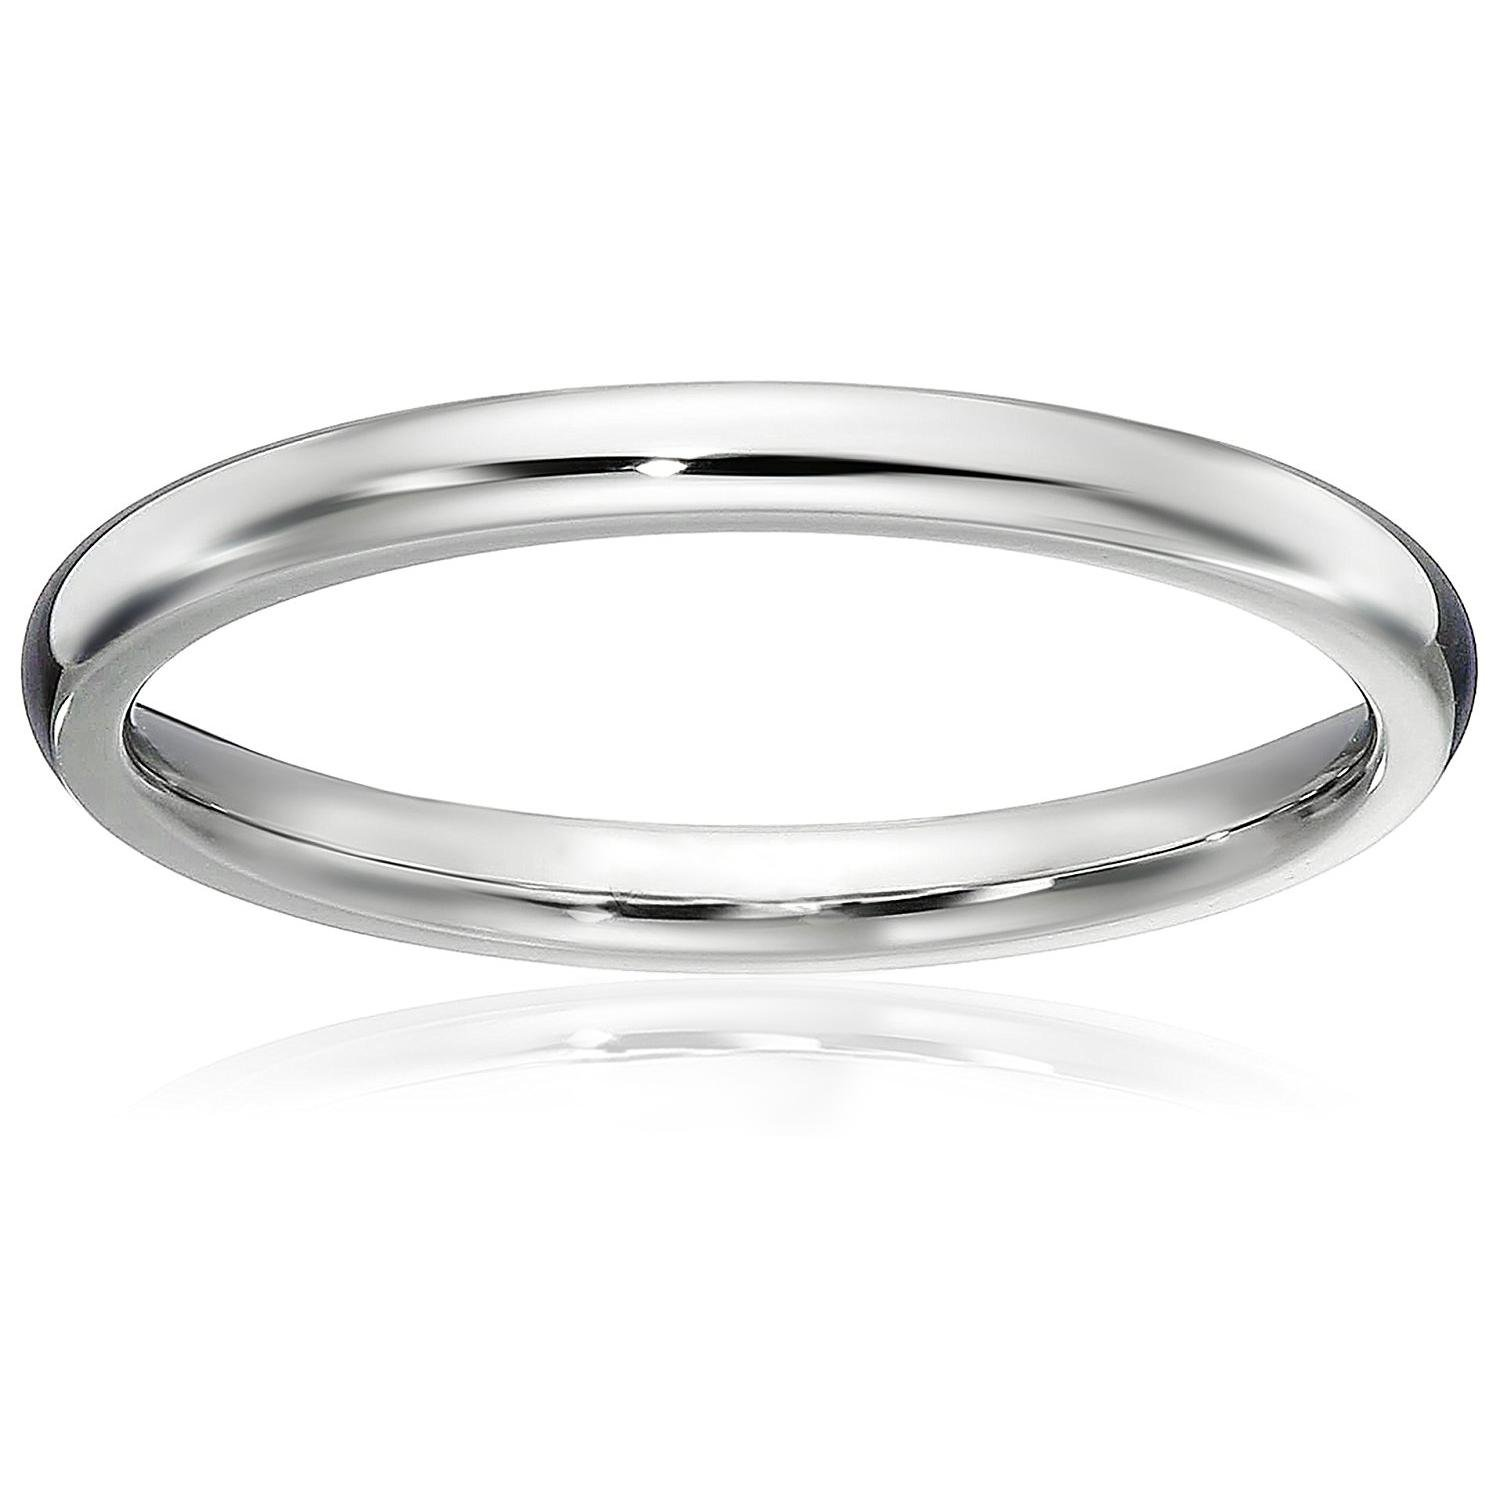 Athena Jewelry Titanium Series 1.5 MM Titanium Comfort Fit Wedding Band Ring Classy Domed Ring(Size Selectable) (6.5)